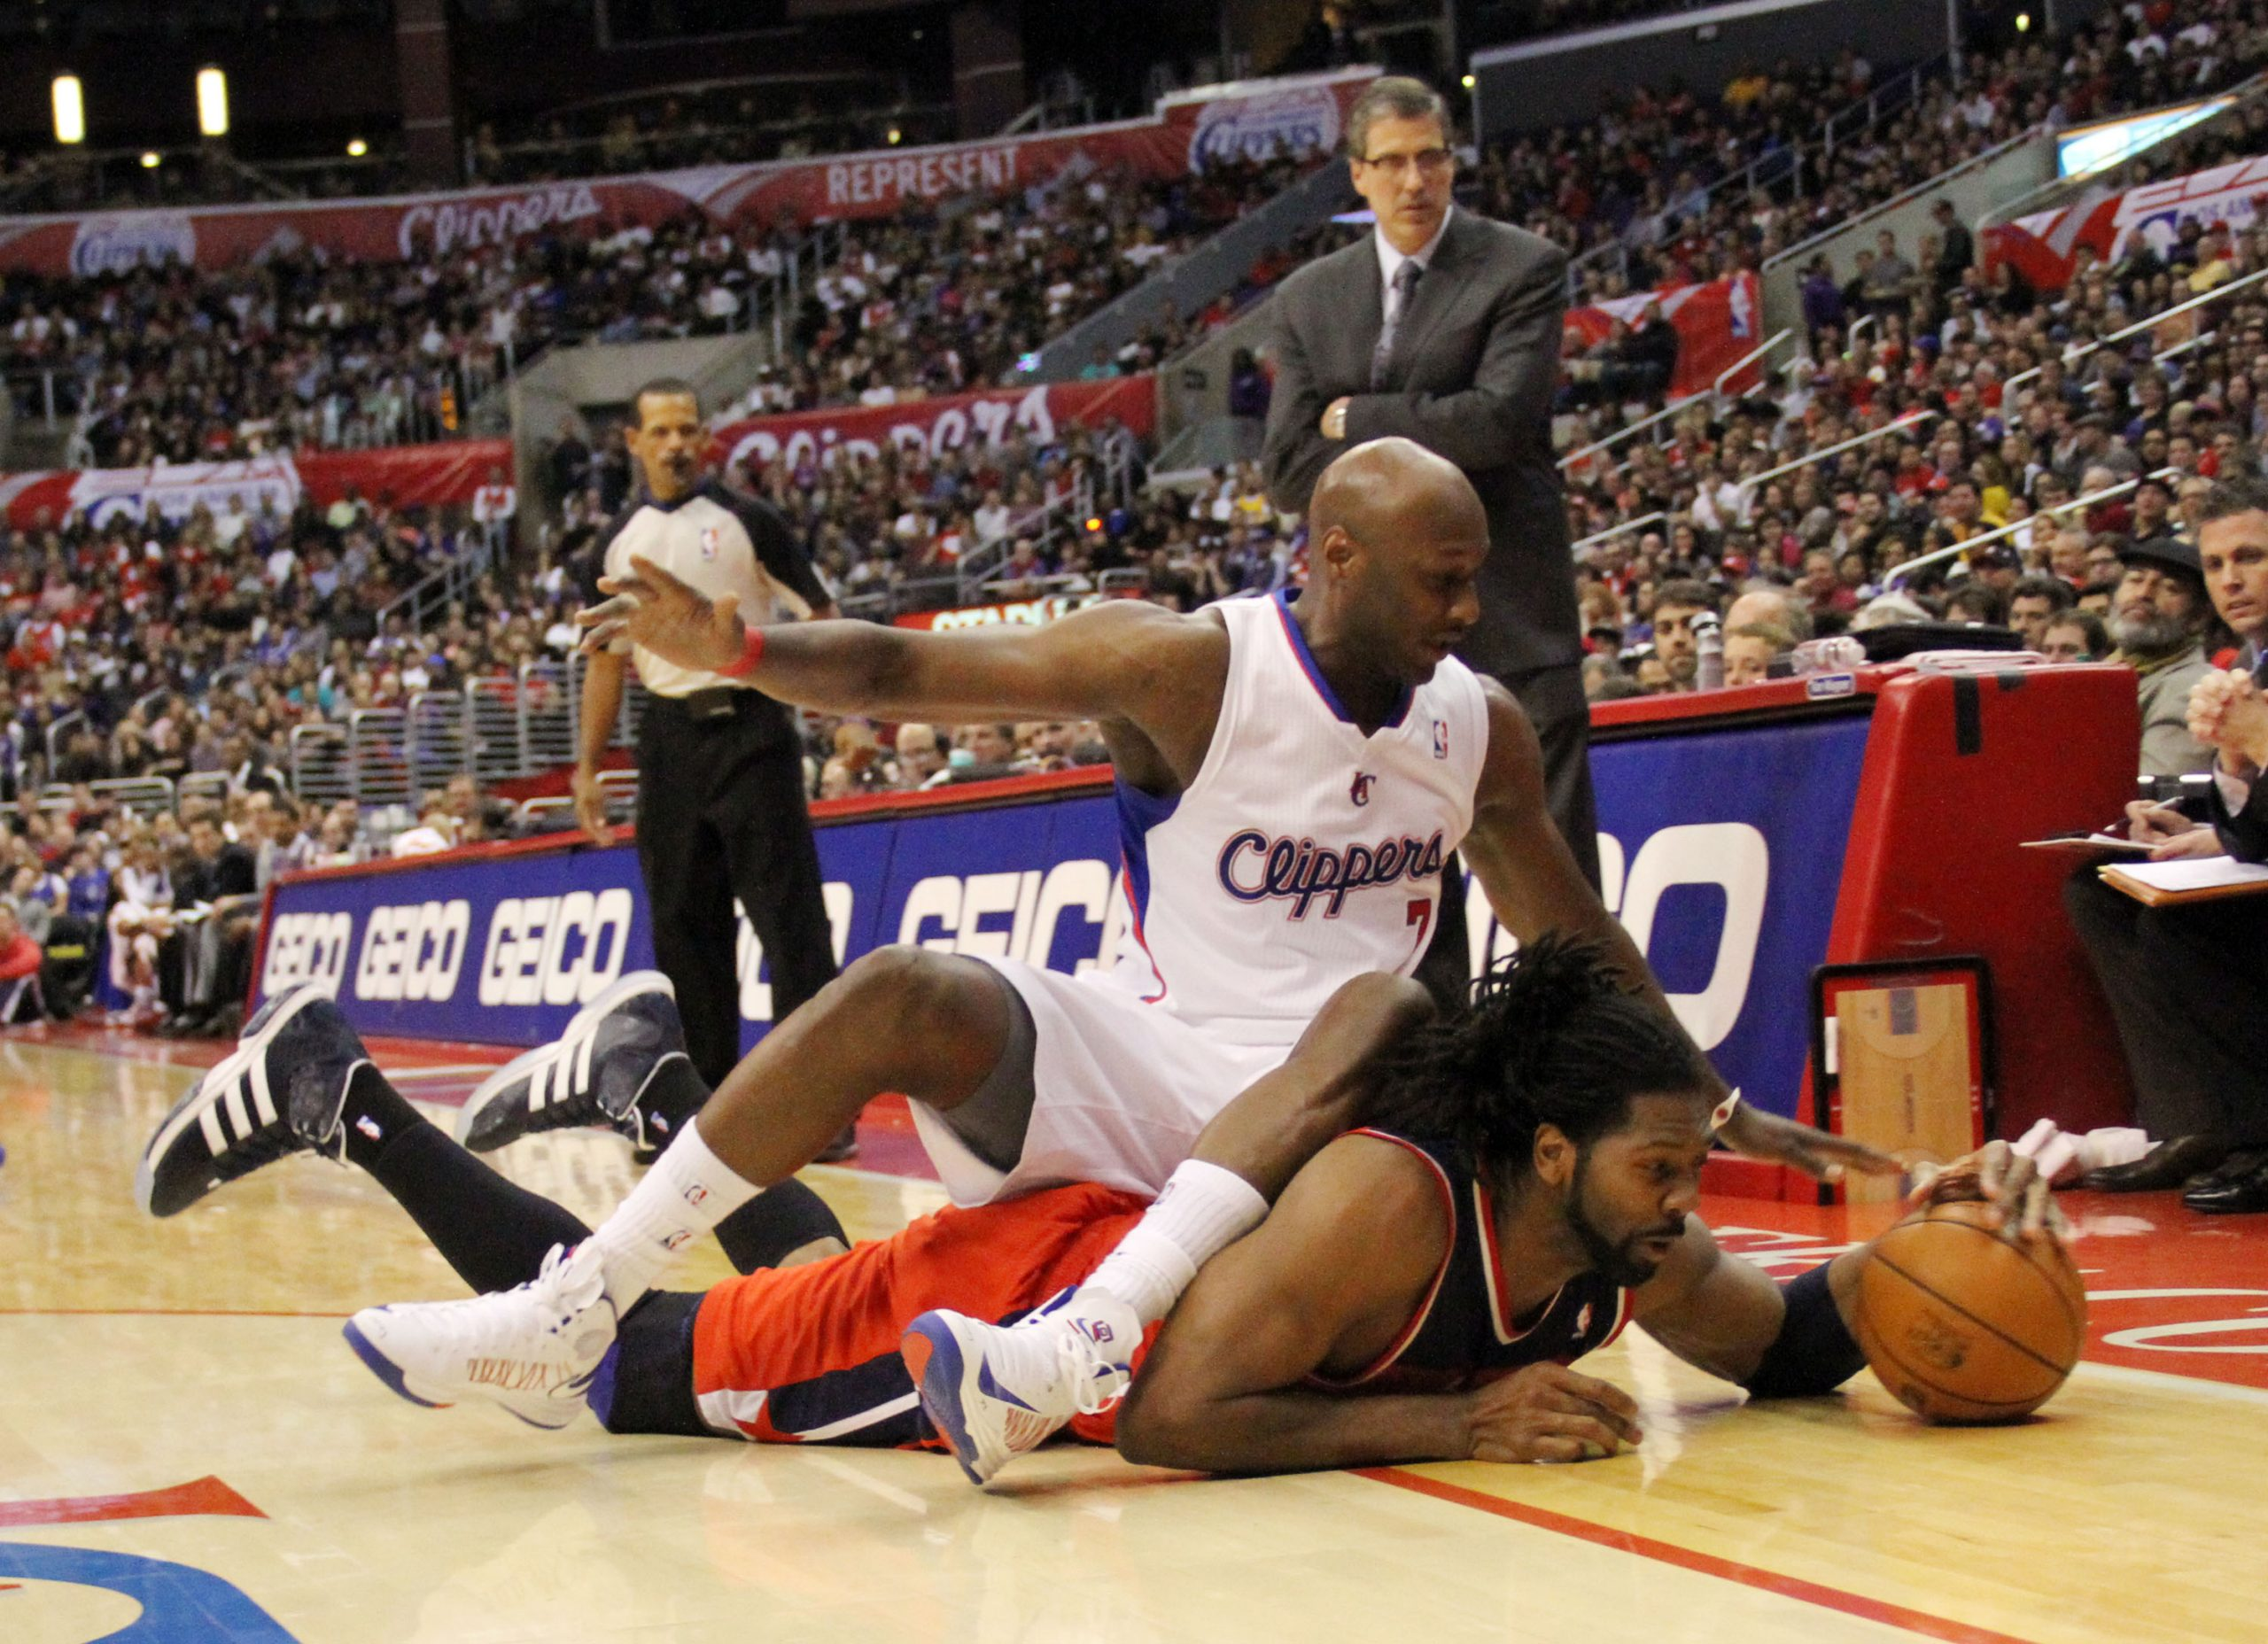 Things are looking up for Lamar Odom and the Los Angeles Clippers. Photo Credit: Burt Harris